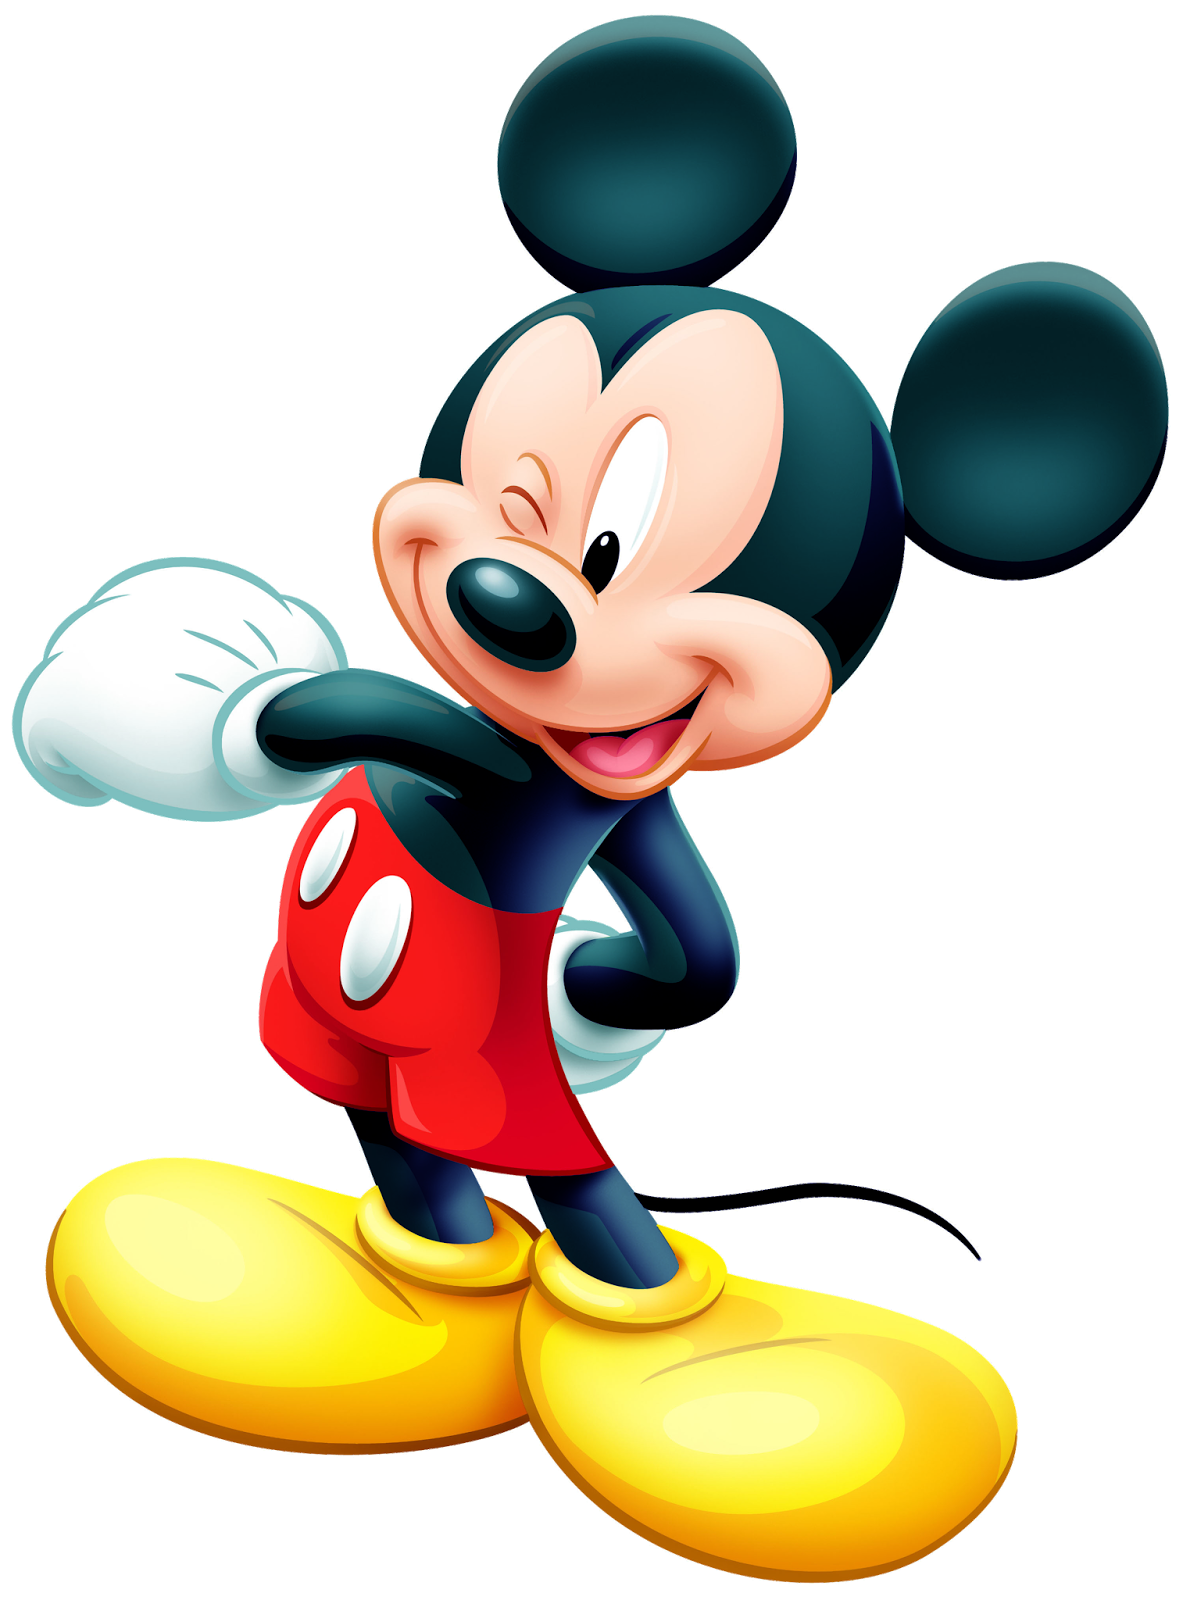 Mickey mouse hot dog dance clipart svg royalty free stock Mickey-2-psd16624.png (1183×1600) | Aniversário | Pinterest ... svg royalty free stock